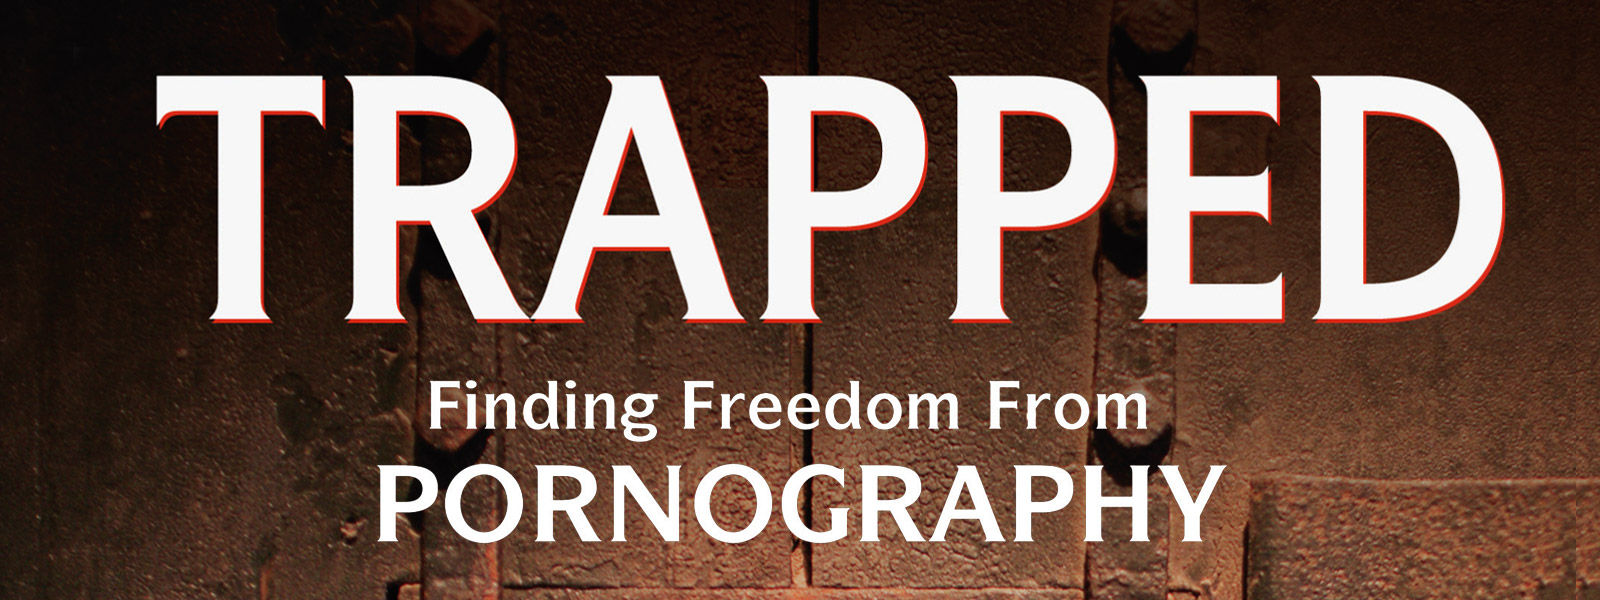 Trapped: Finding Freedom from Pornography